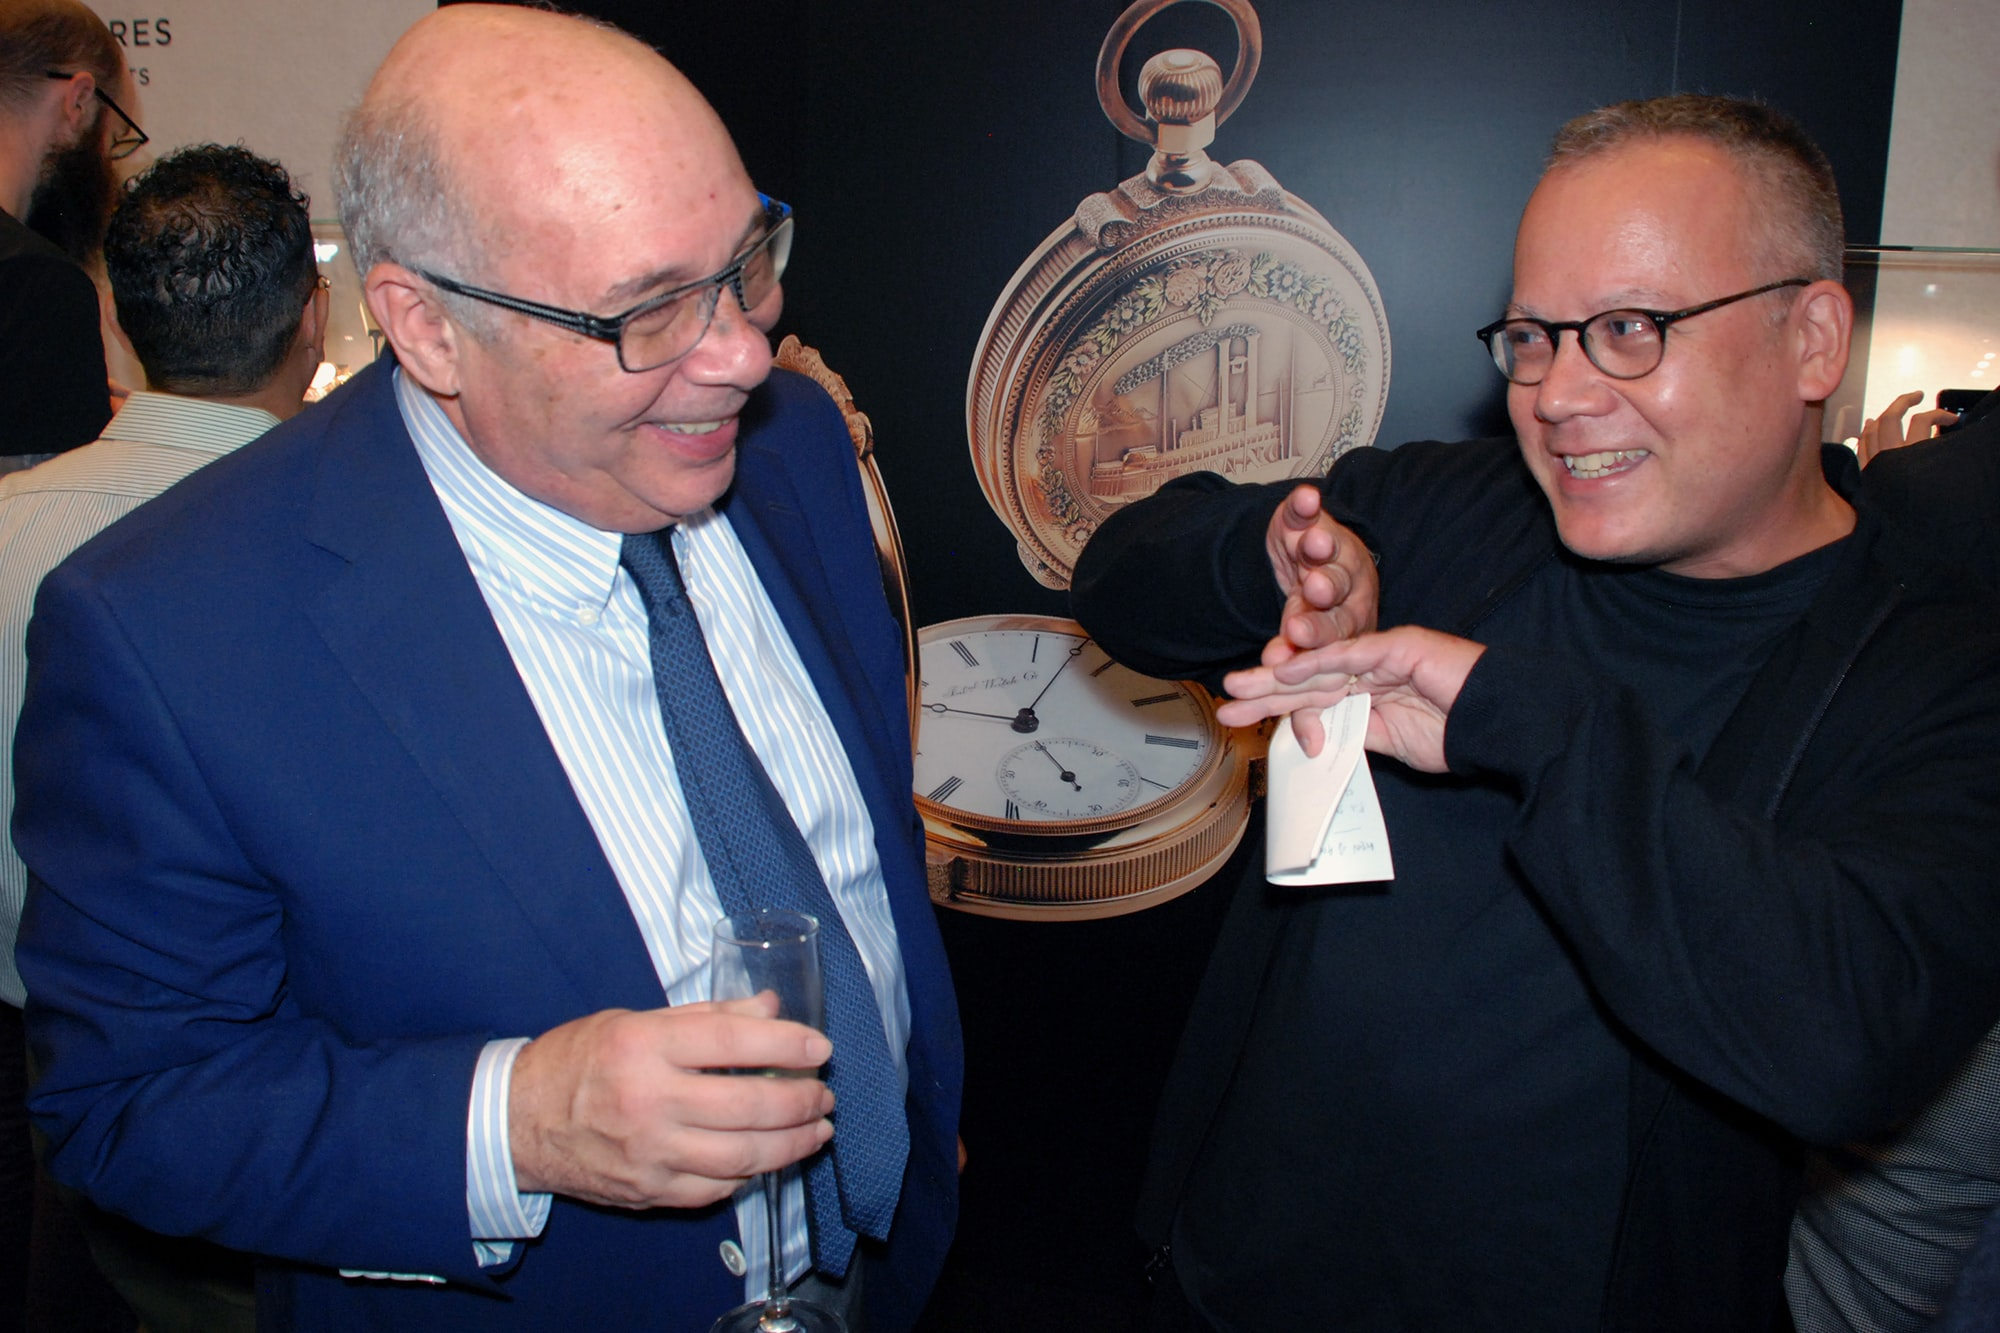 Photo Report: HODINKEE And IWC Celebrate The Portugieser Hand-Wound Tourbillion Edition 'D.H. Craig USA' In New York Photo Report: HODINKEE And IWC Celebrate The Portugieser Hand-Wound Tourbillion Edition 'D.H. Craig USA' In New York 0110 copy